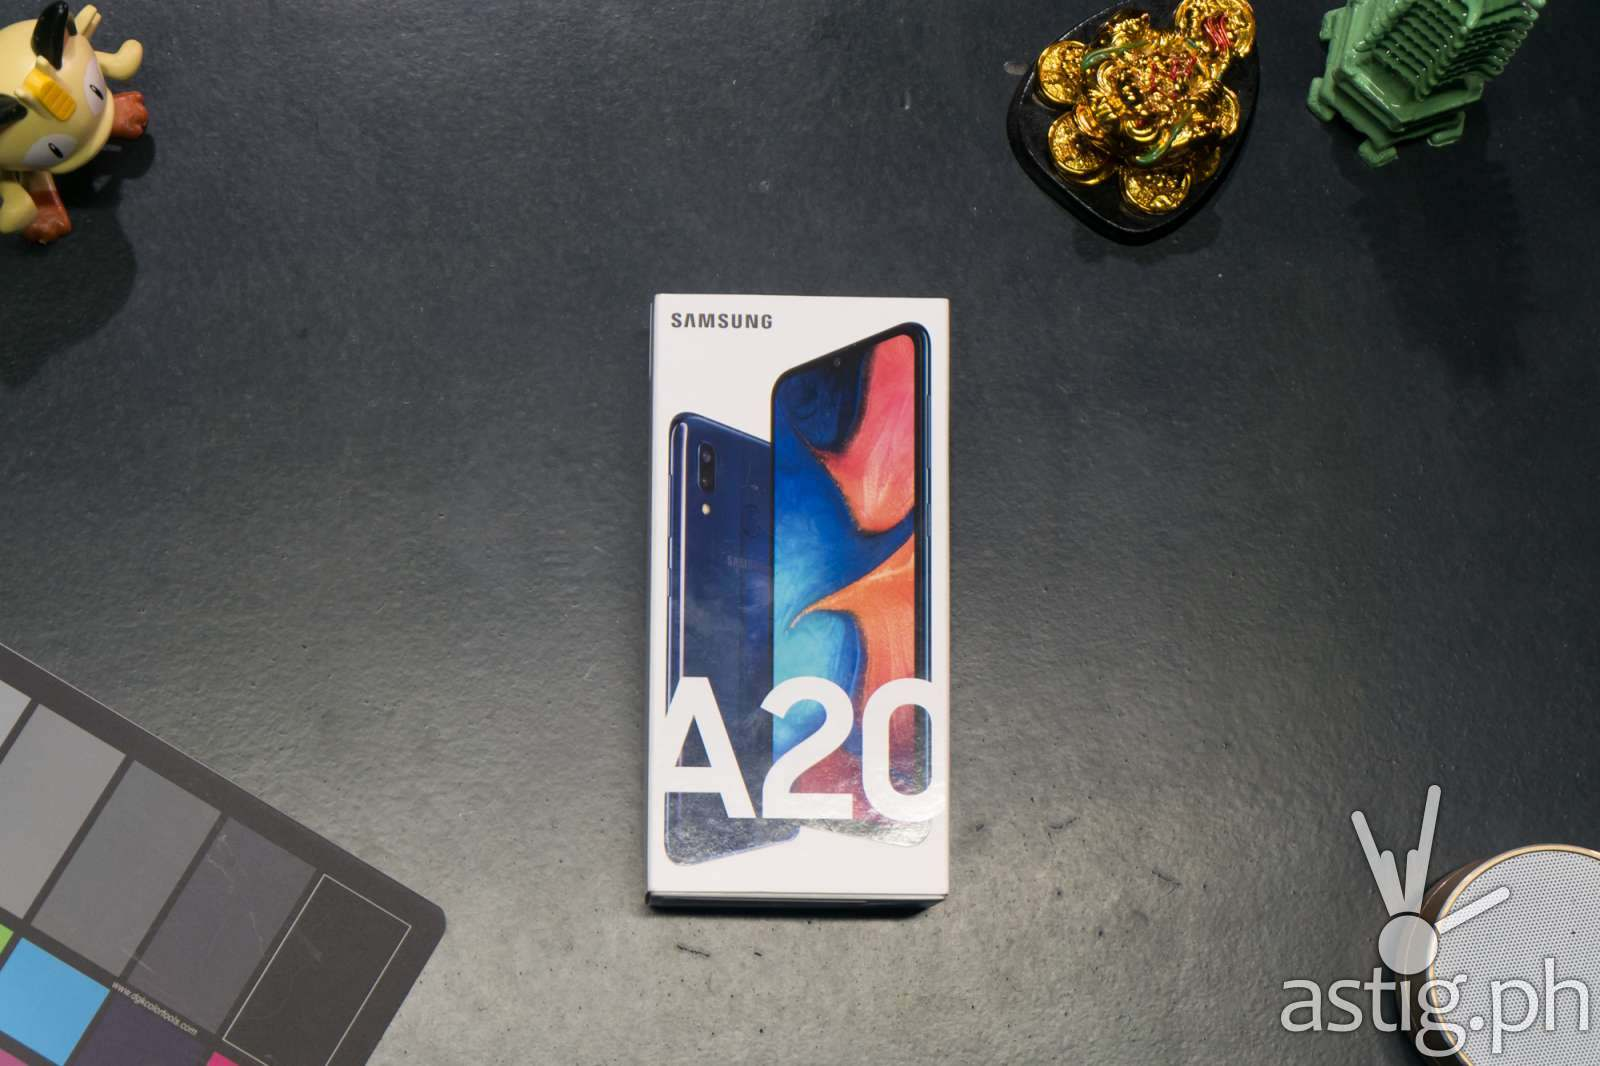 Unboxing - Samsung Galaxy A20 (Philippines)